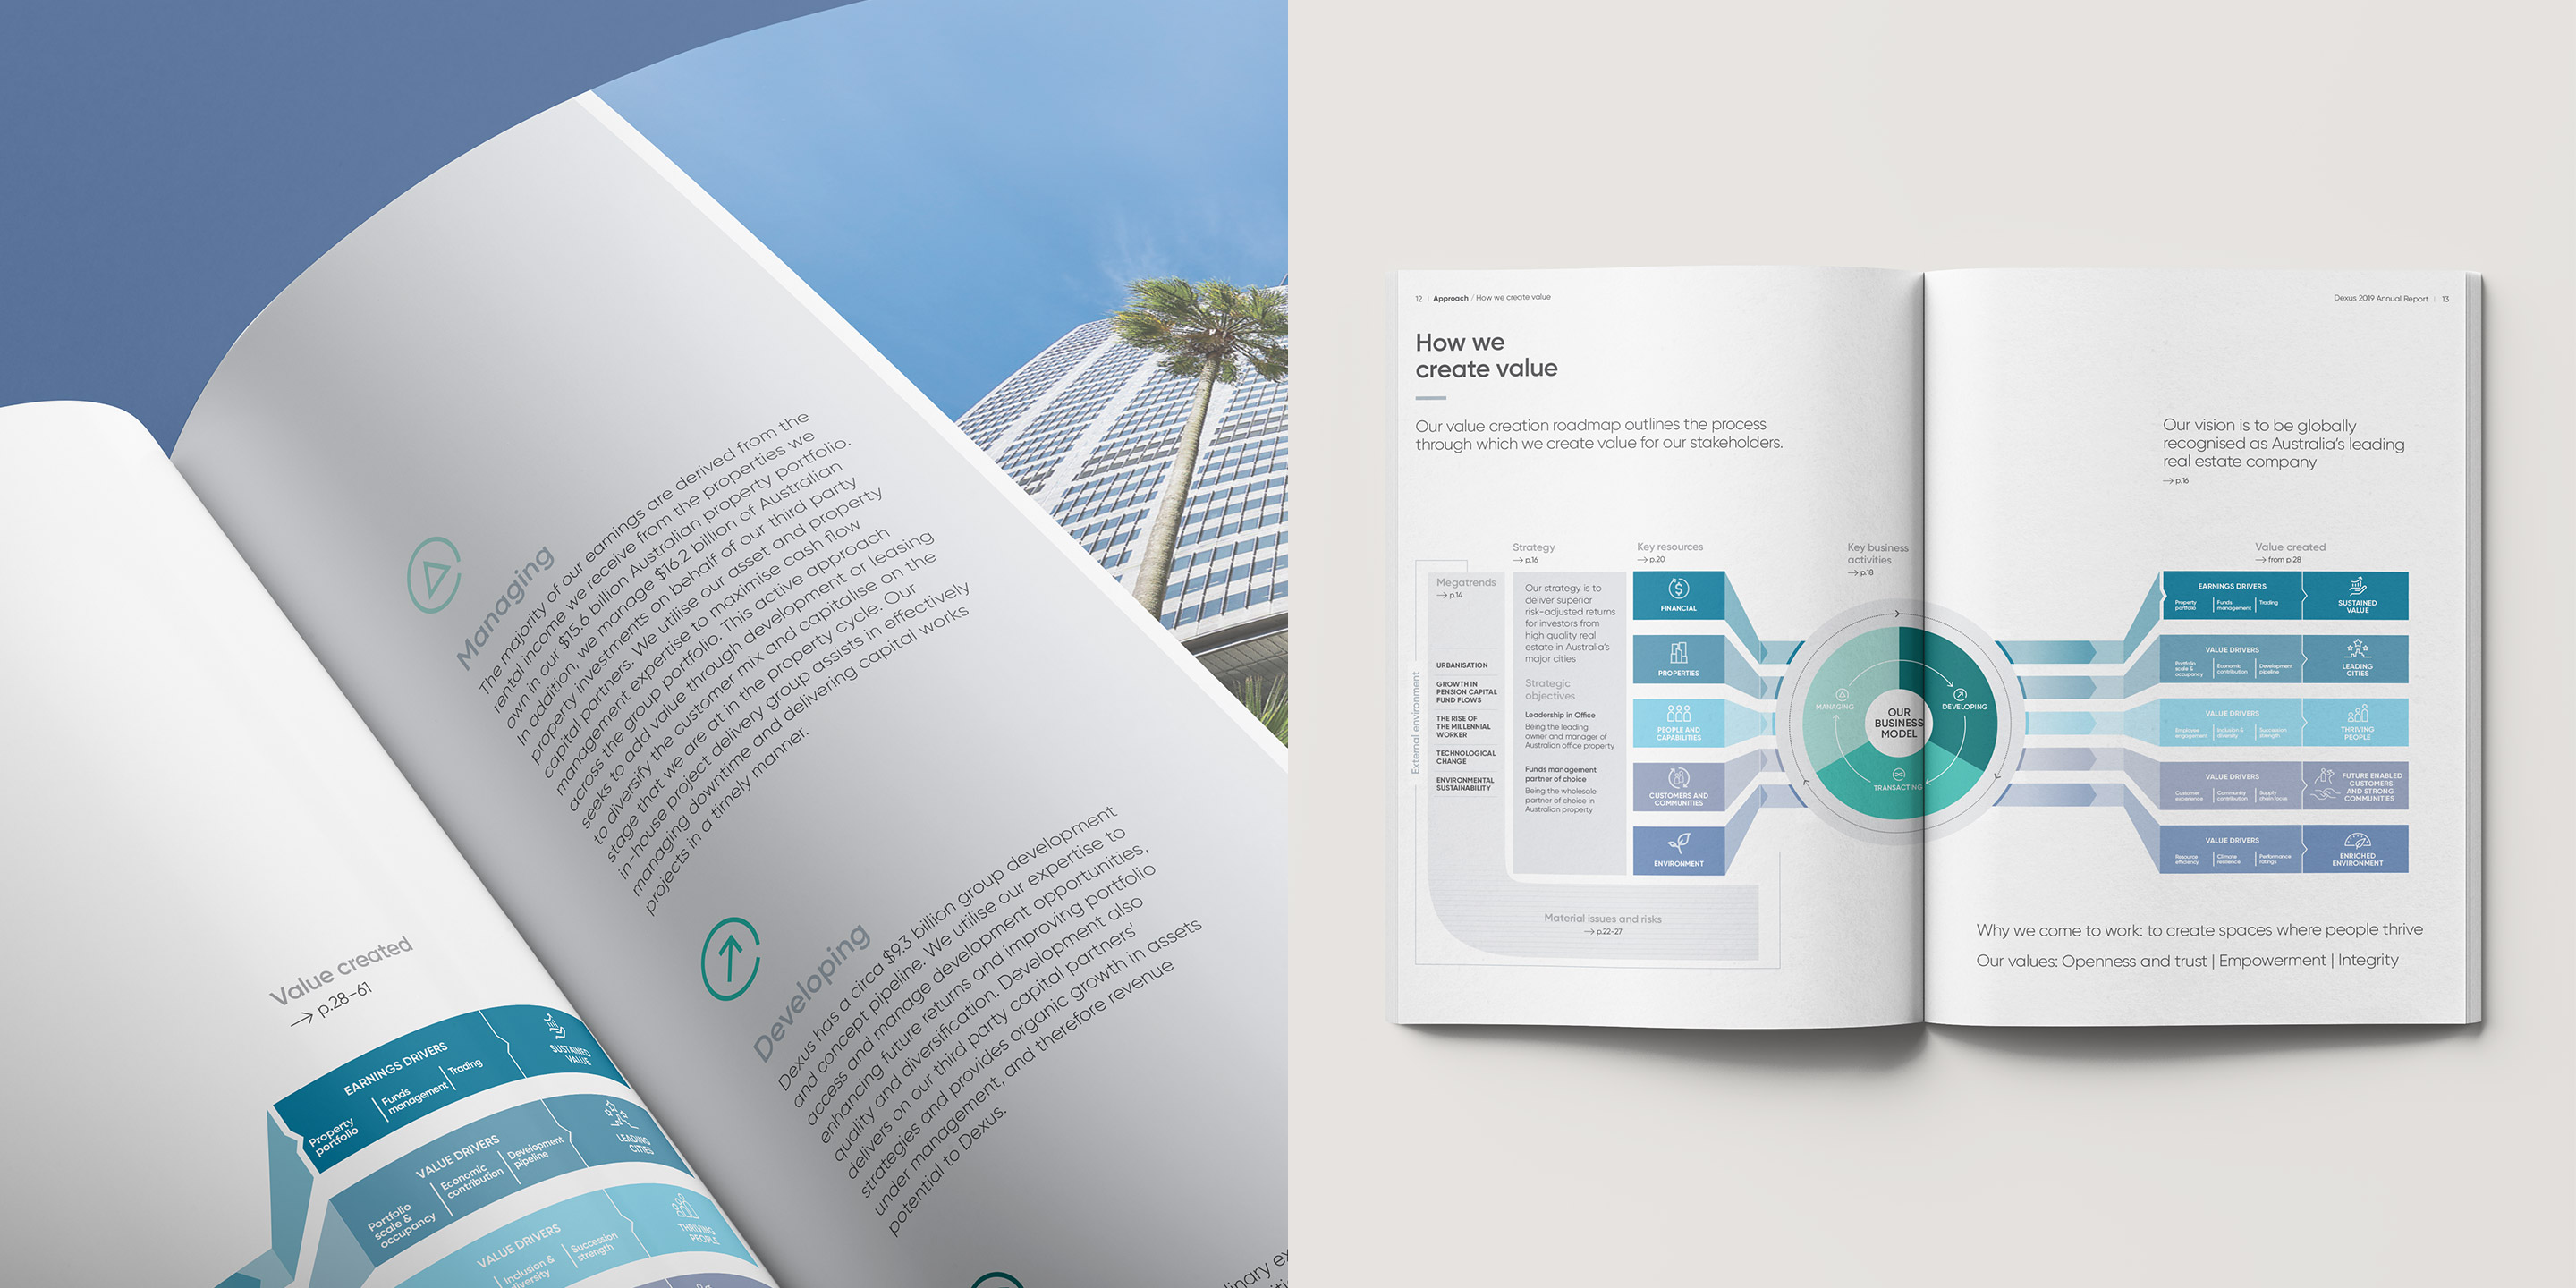 Dexus 2019 Annual Report. Inside spread detail and 'How we create value' inside spread.